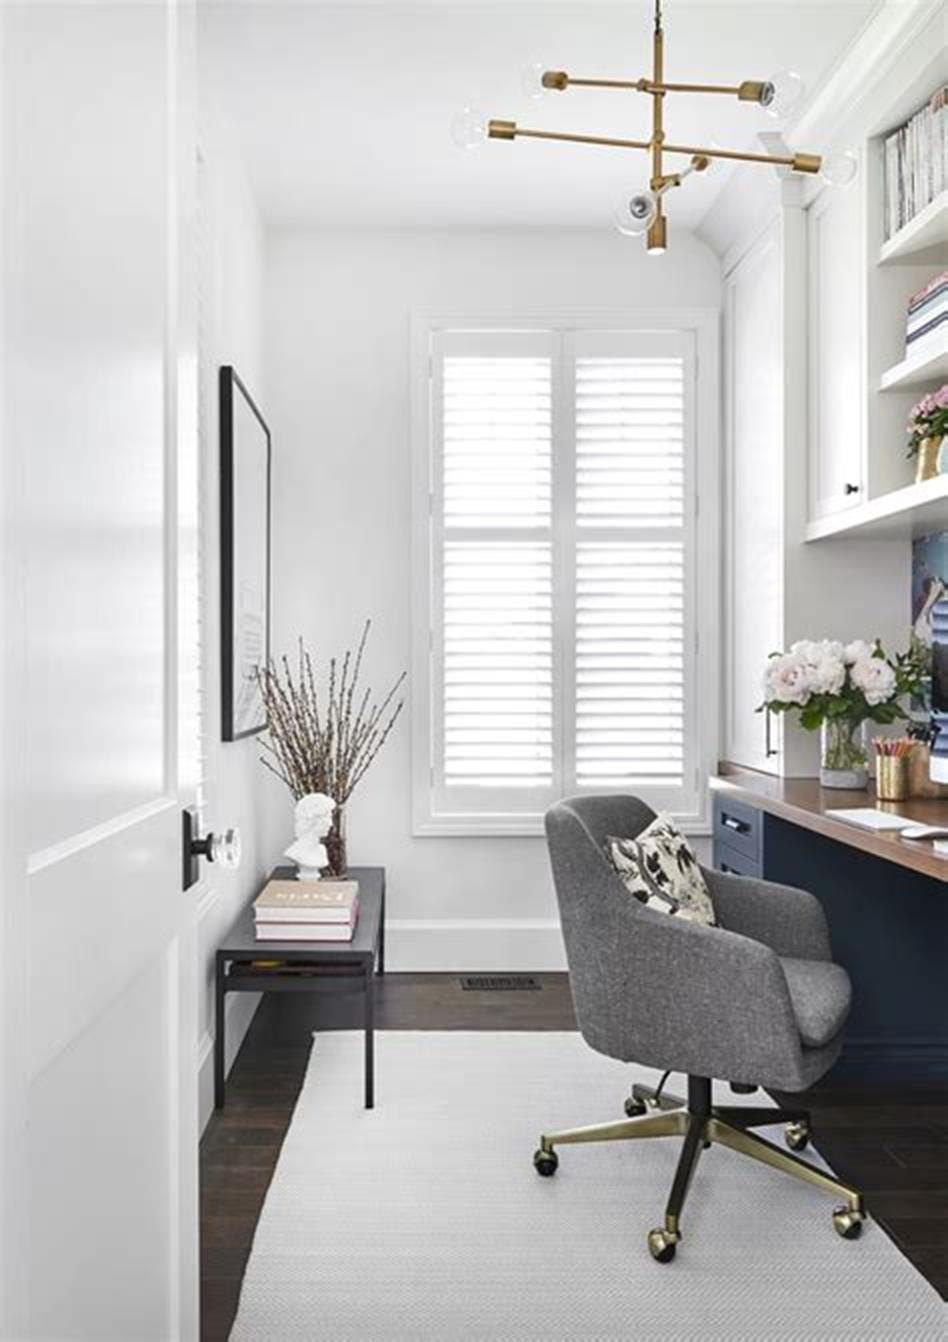 50 Best Small Space Office Decorating Ideas On a Budget 2019 49